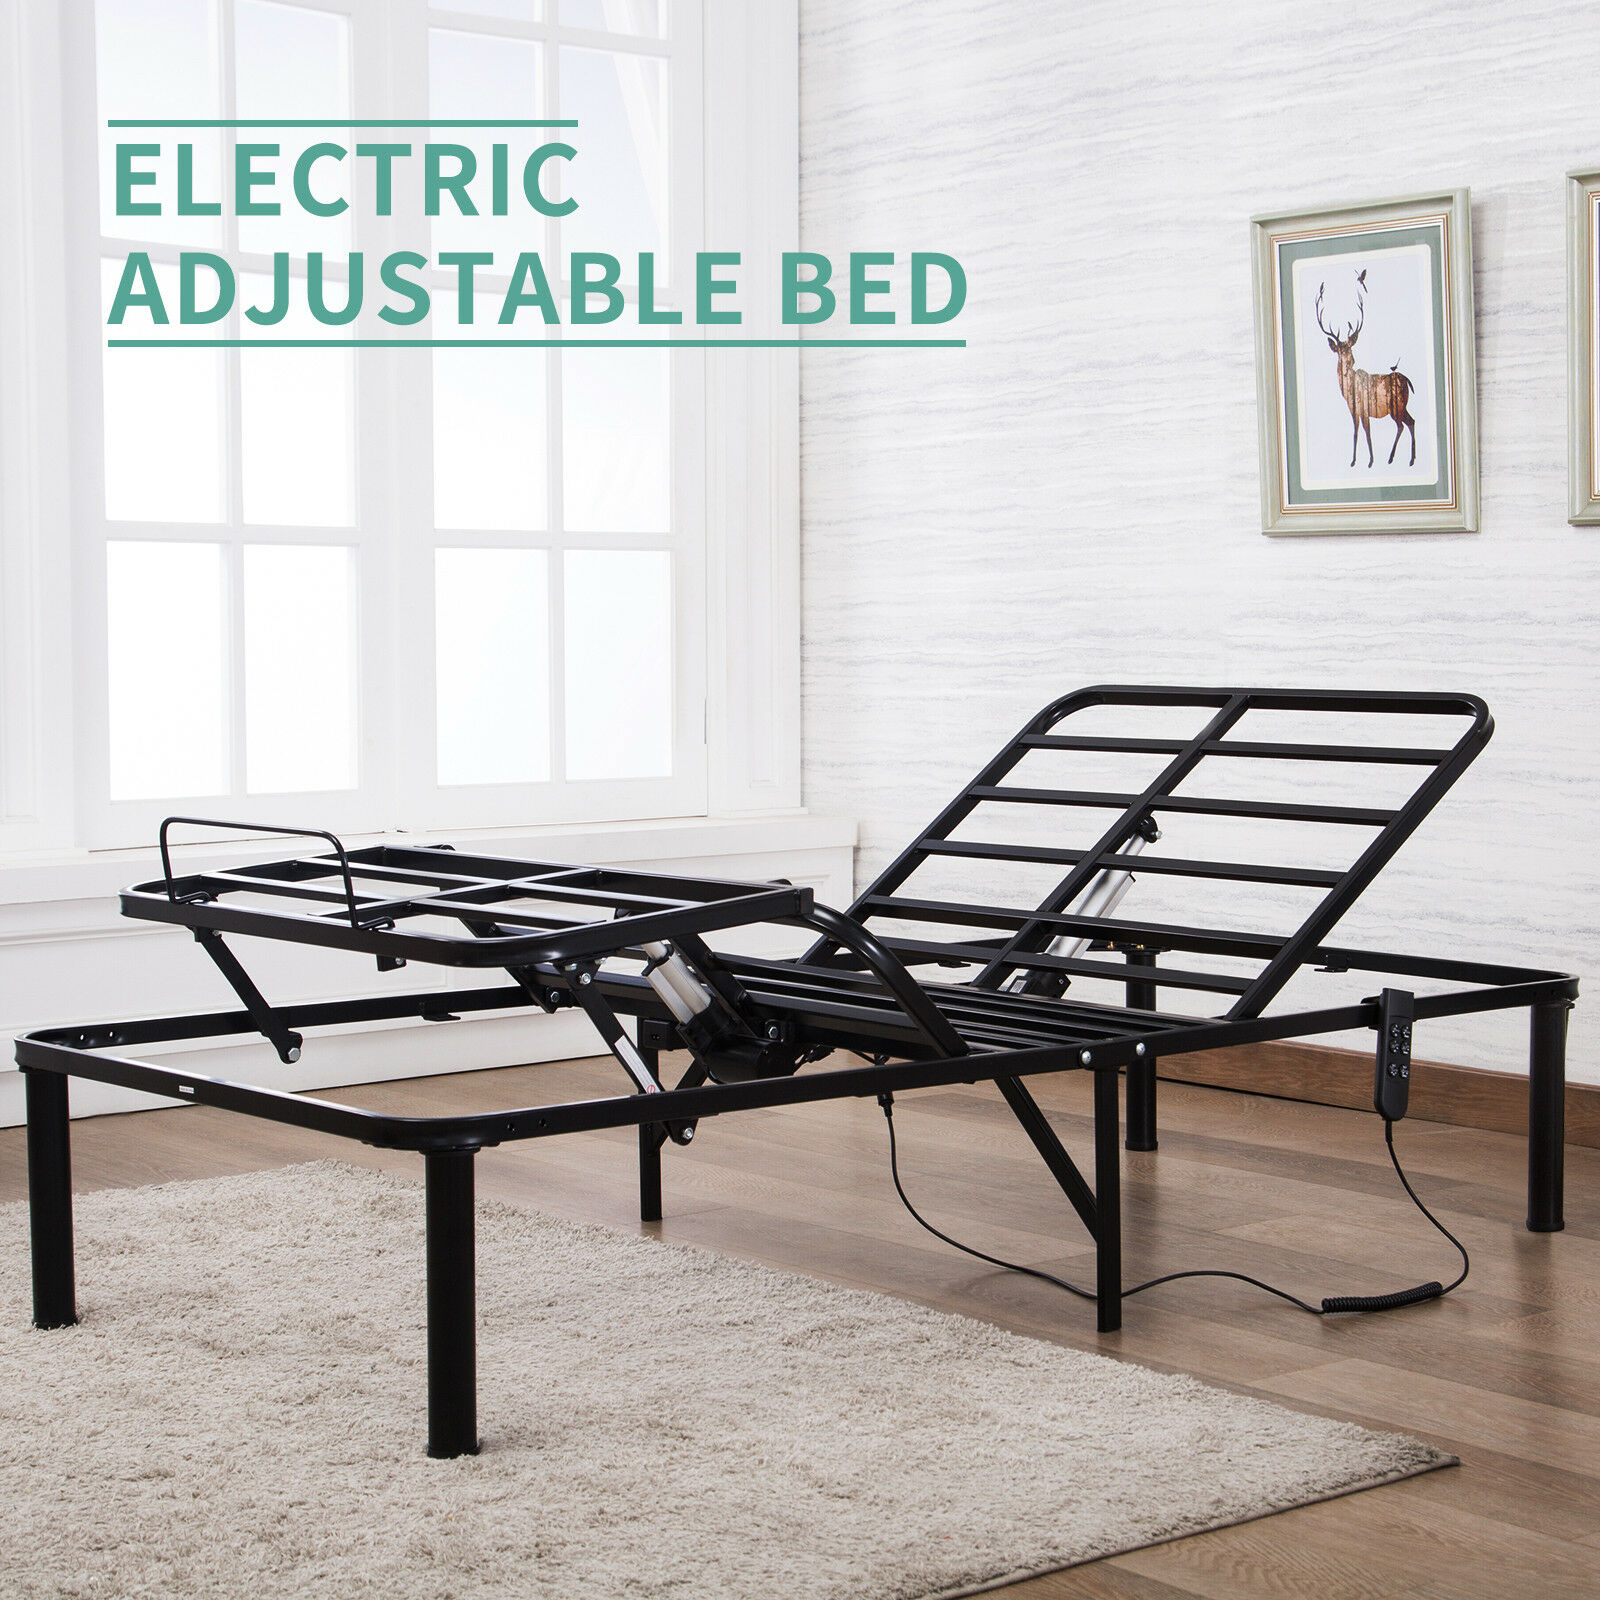 Adjustable Beds Electric Details About Bi Folding Twin Xl Metal Bed Frame Electric Adjustable Head Leg Elevation W Rc